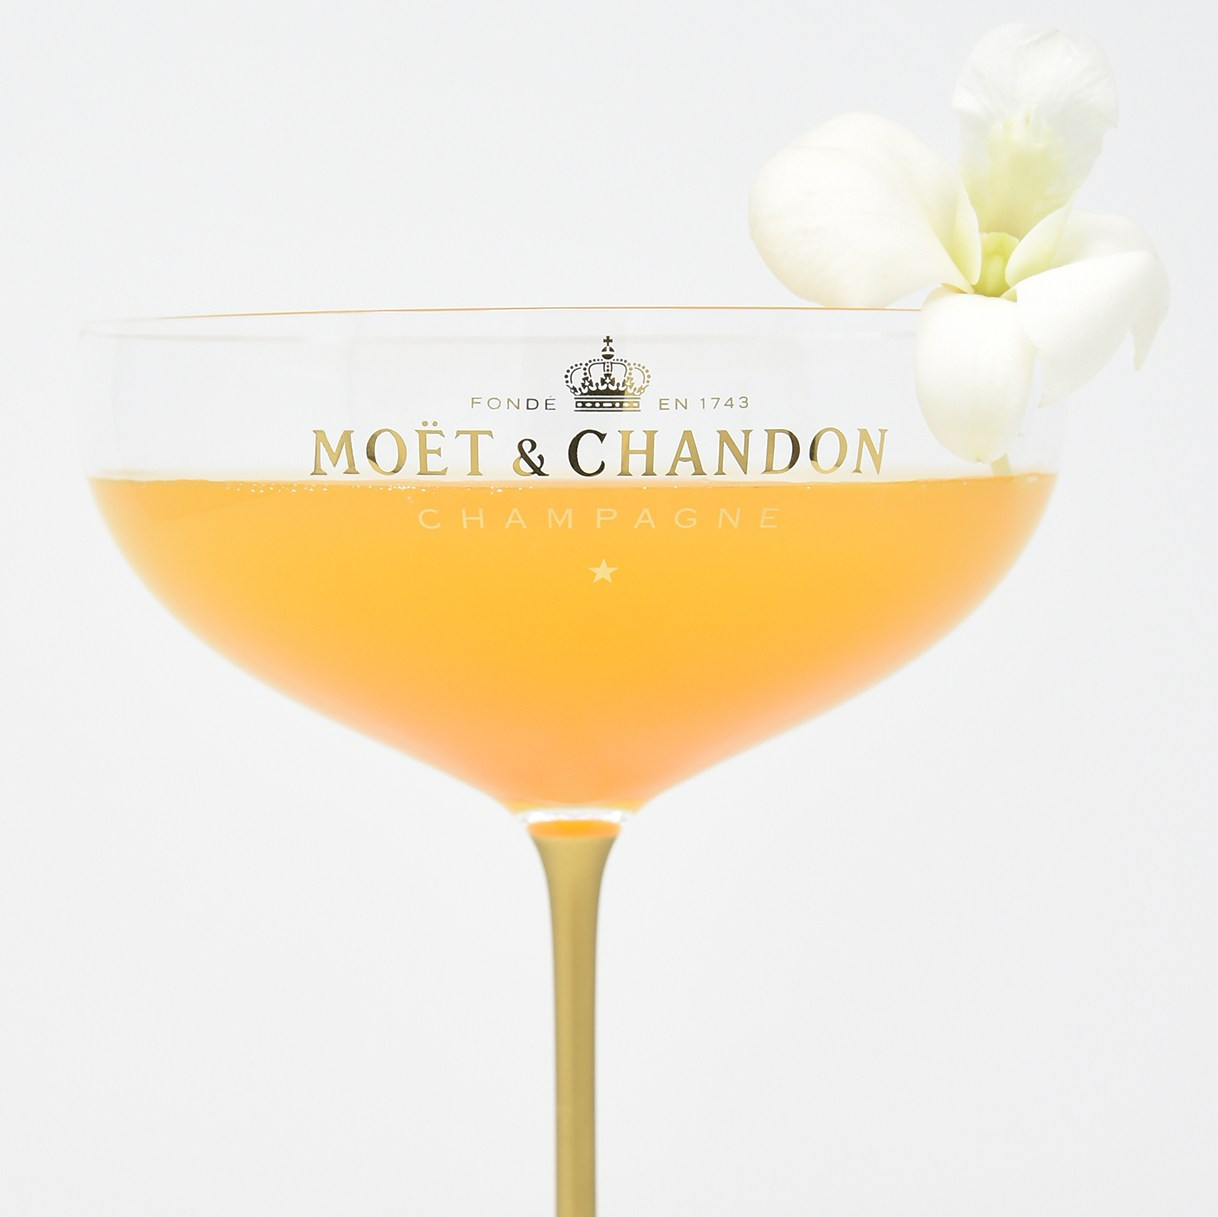 The official Golden Globes cocktail